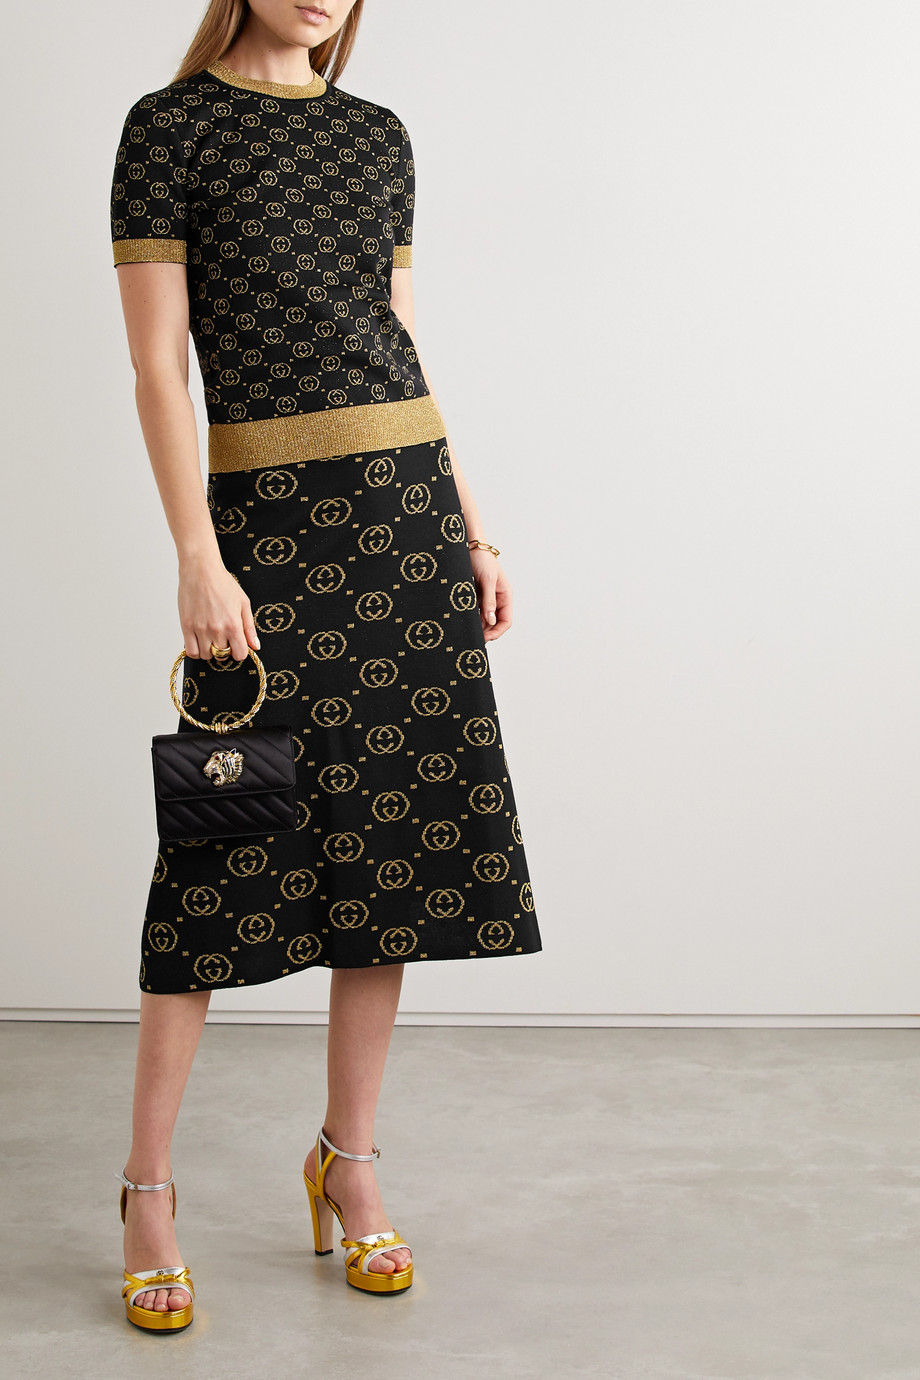 Gucci Metallic intarsia wool-blend midi skirt